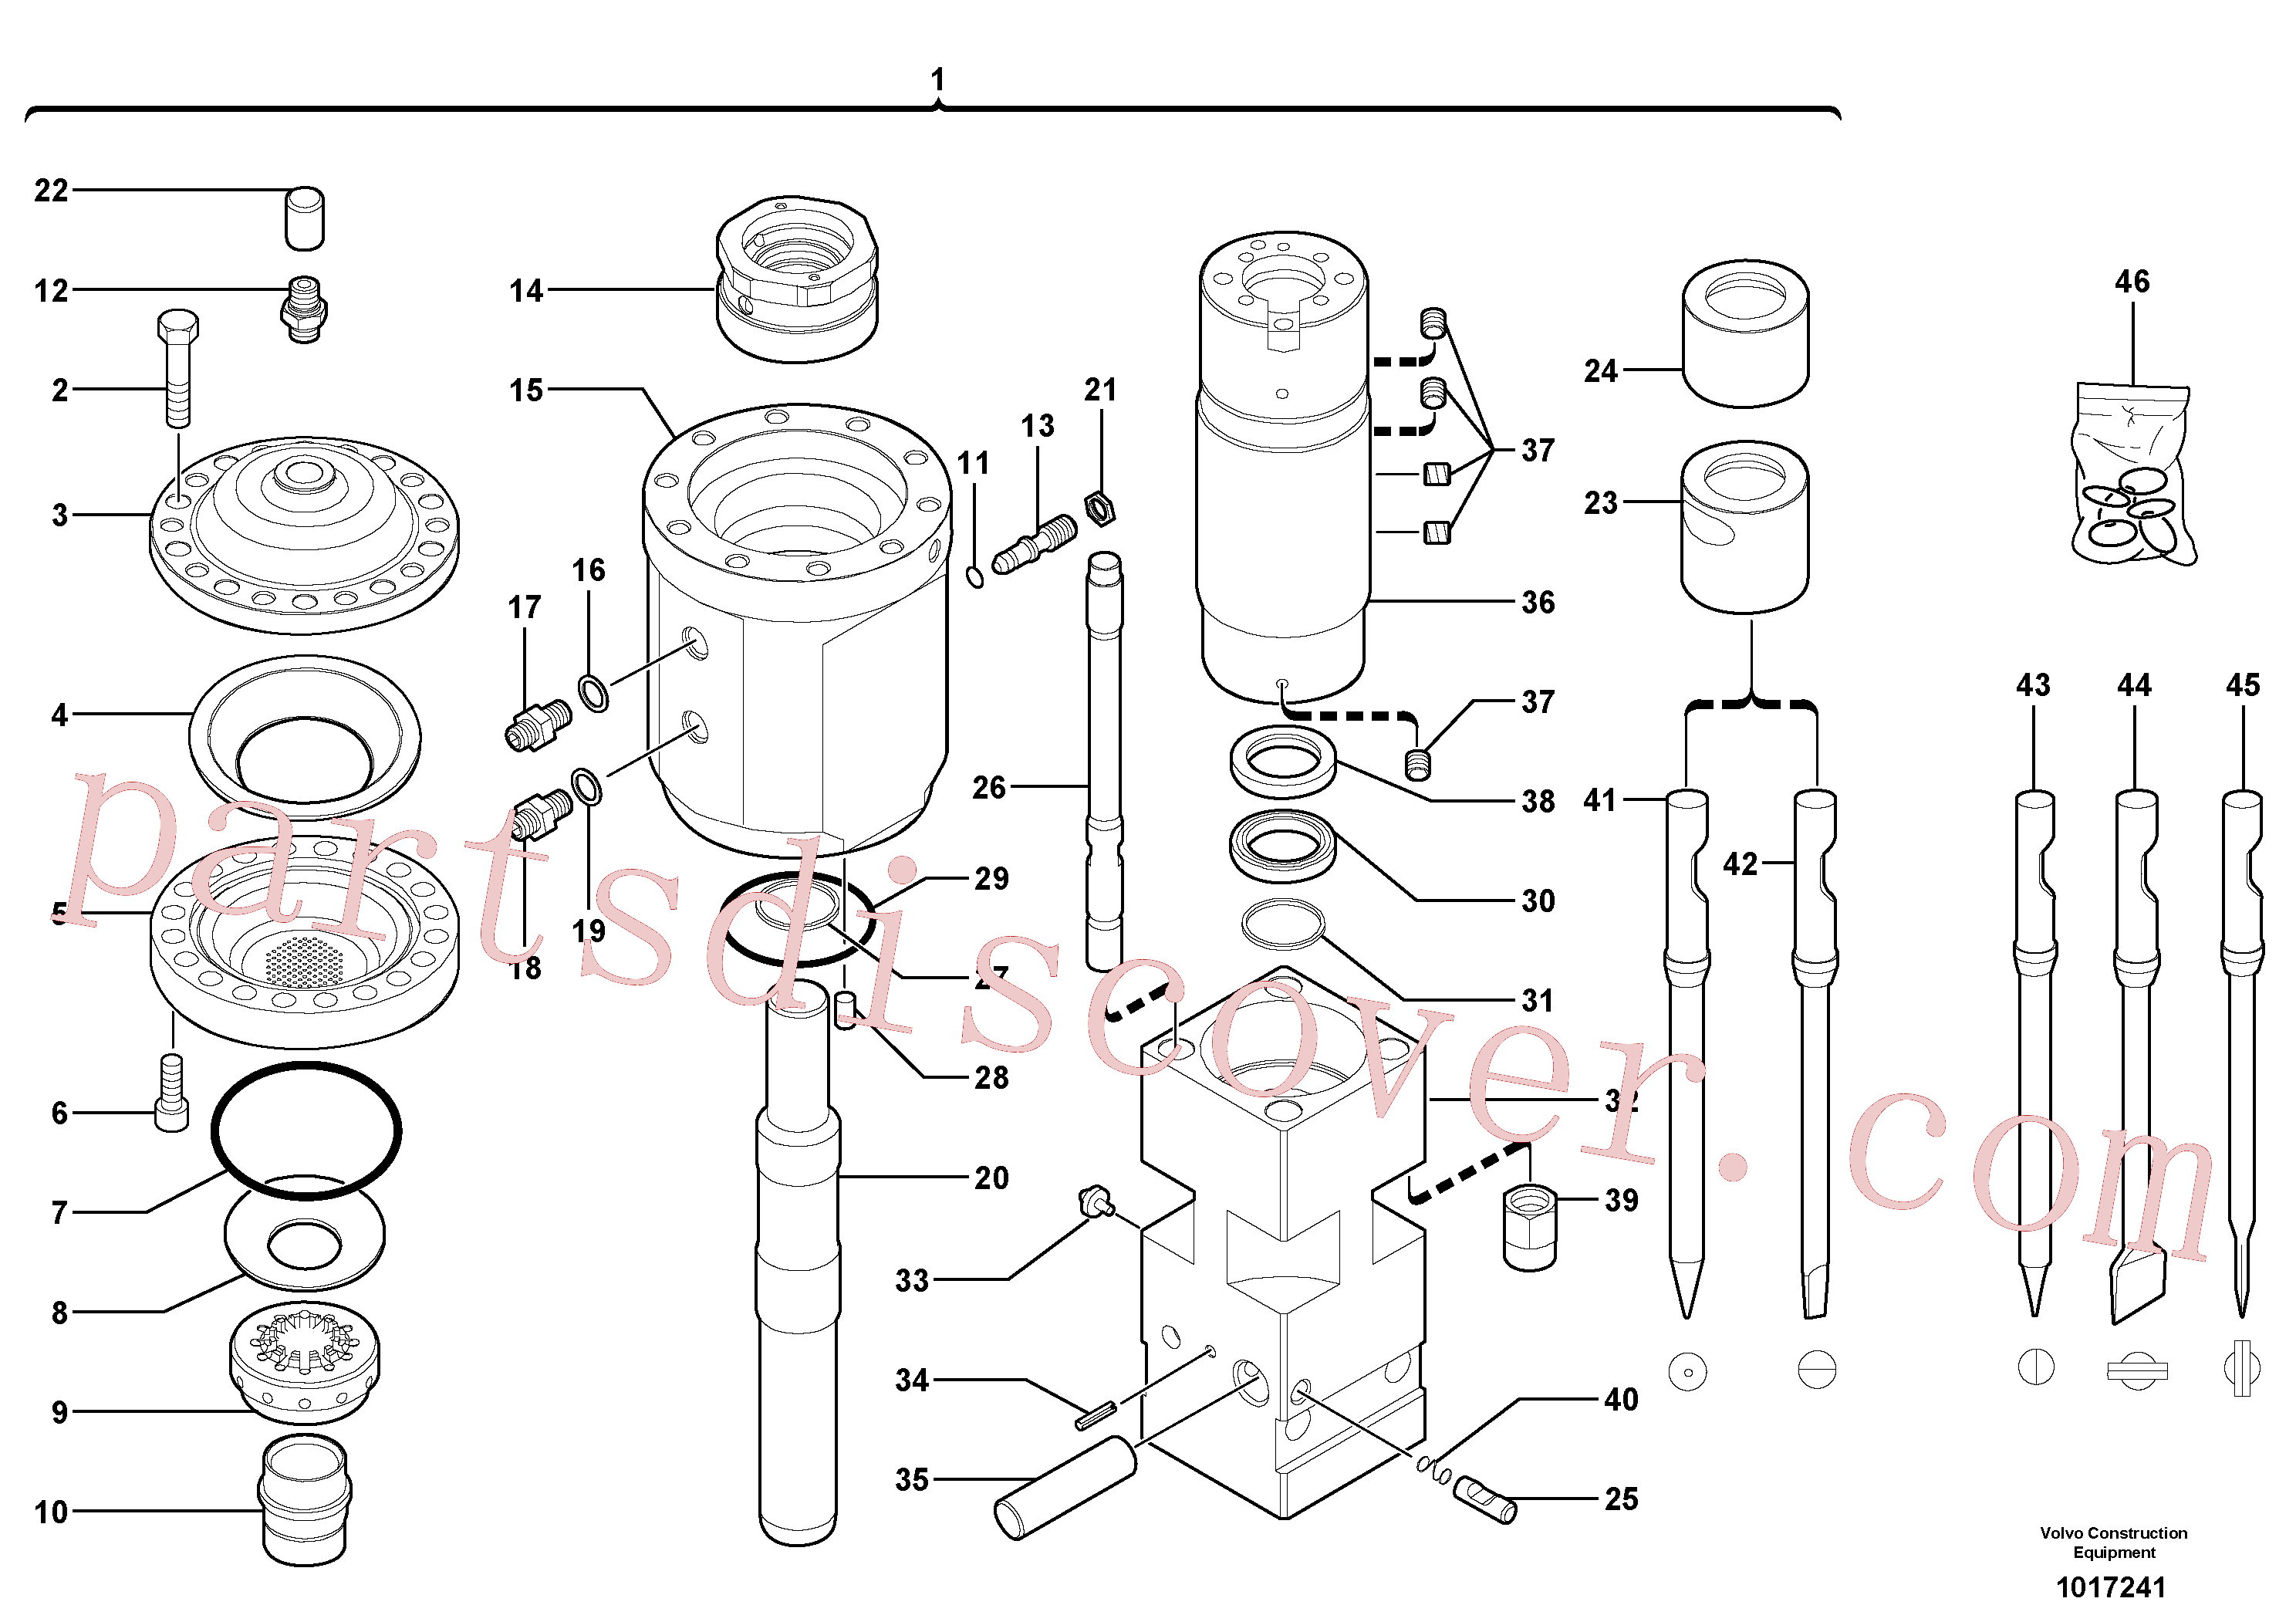 VOE11716191 for Volvo Hammer(1017241 assembly)